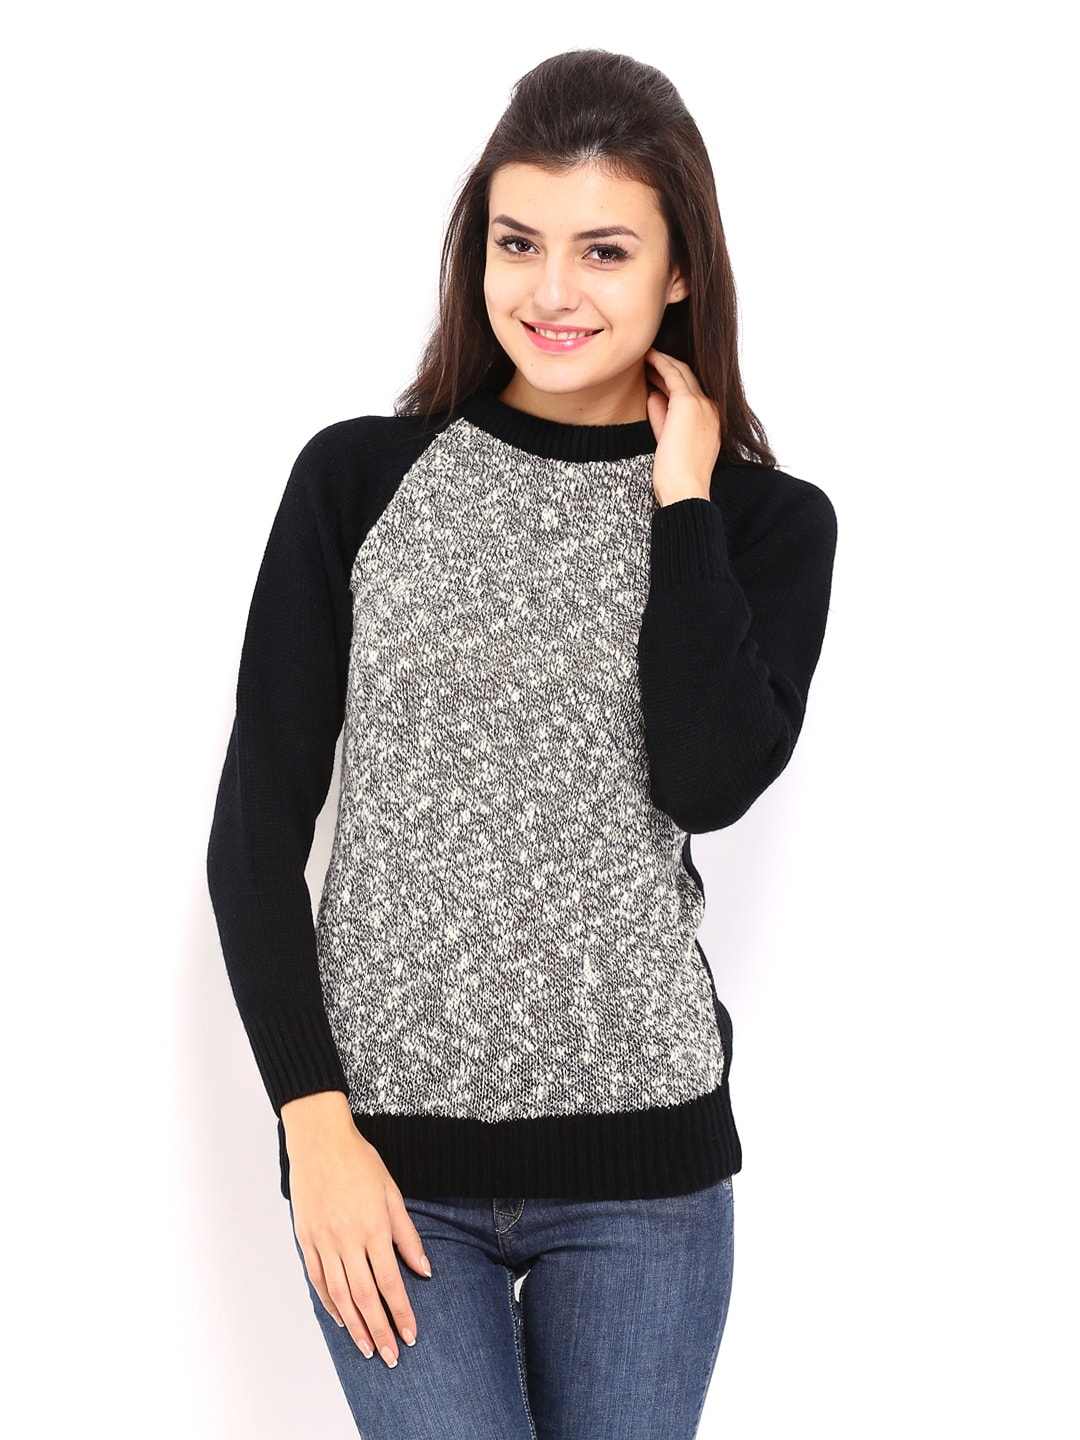 71e8af7a251 Buy Allen Solly Woman Grey   Black Sweater (multicolor) 7512435 for ...